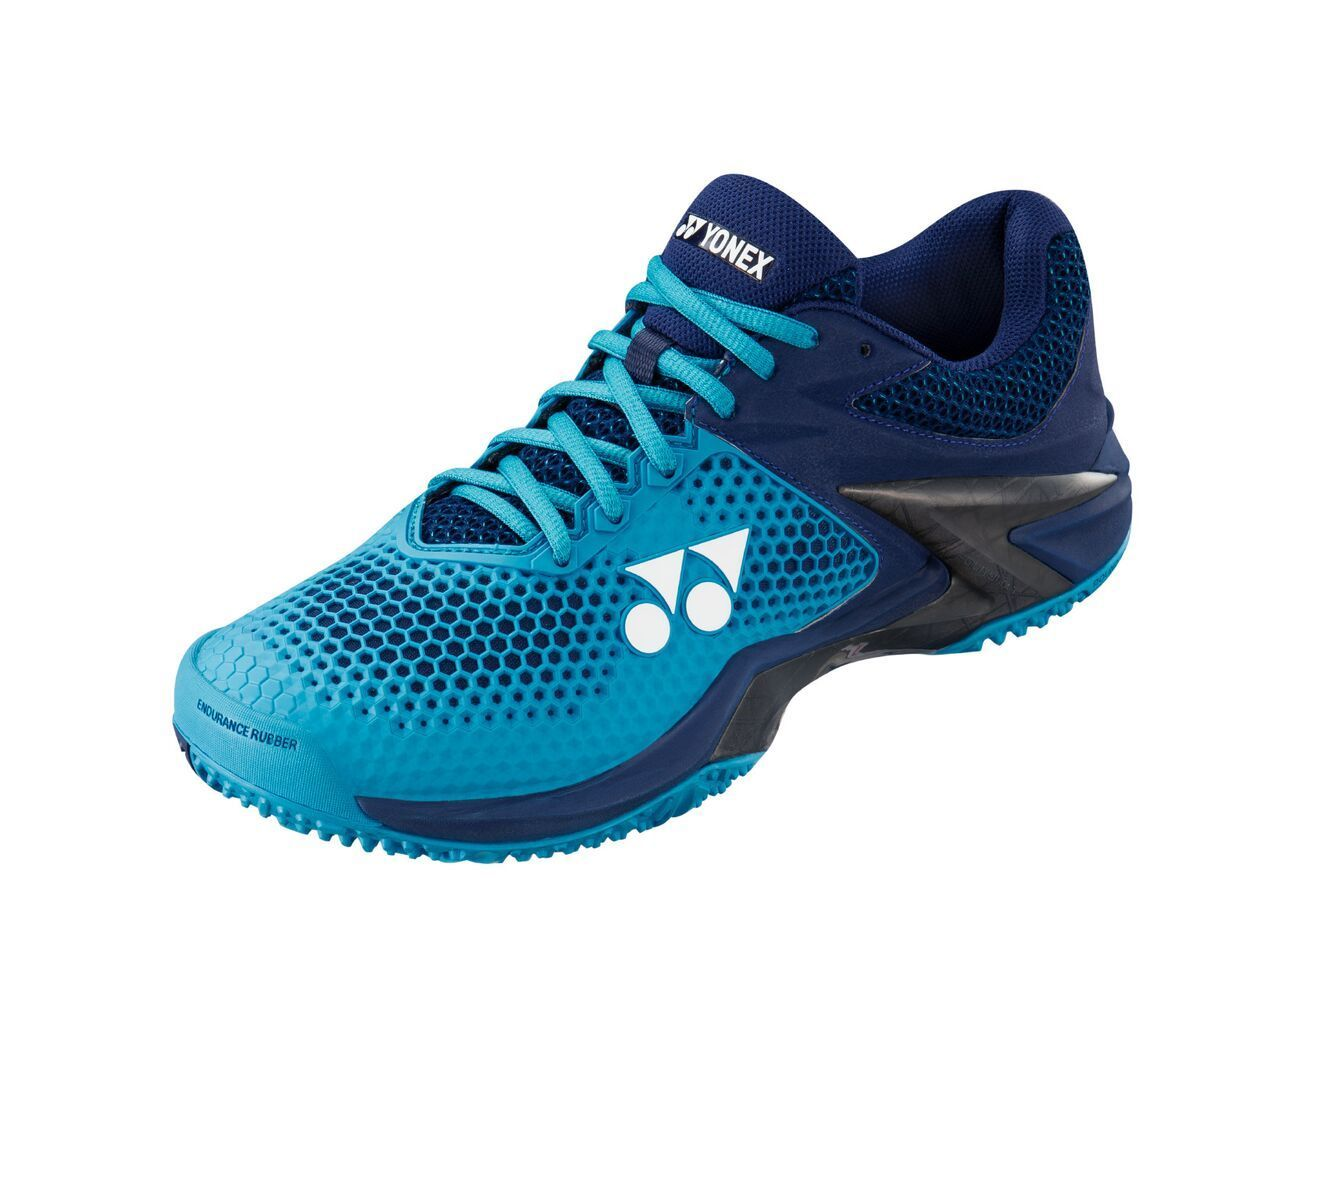 Yonex Power Cushion Eclipsion2 CL: Clay Courts